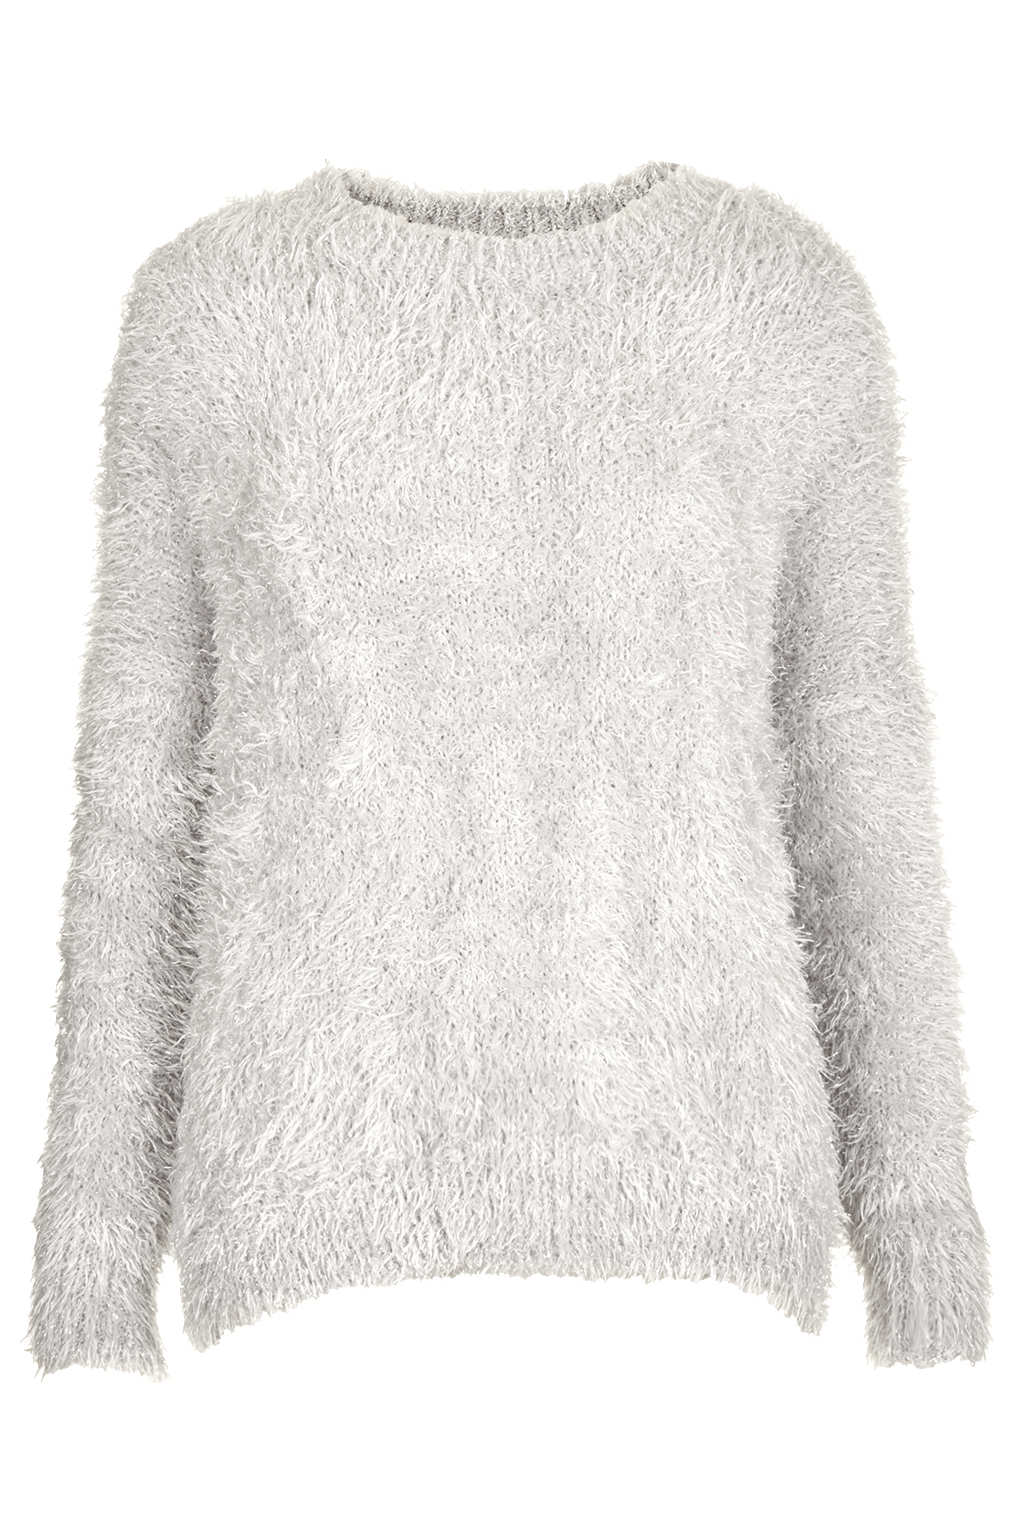 Knitting Pattern Fluffy Jumper : Topshop Knitted Cloud Fluffy Jumper in White Lyst